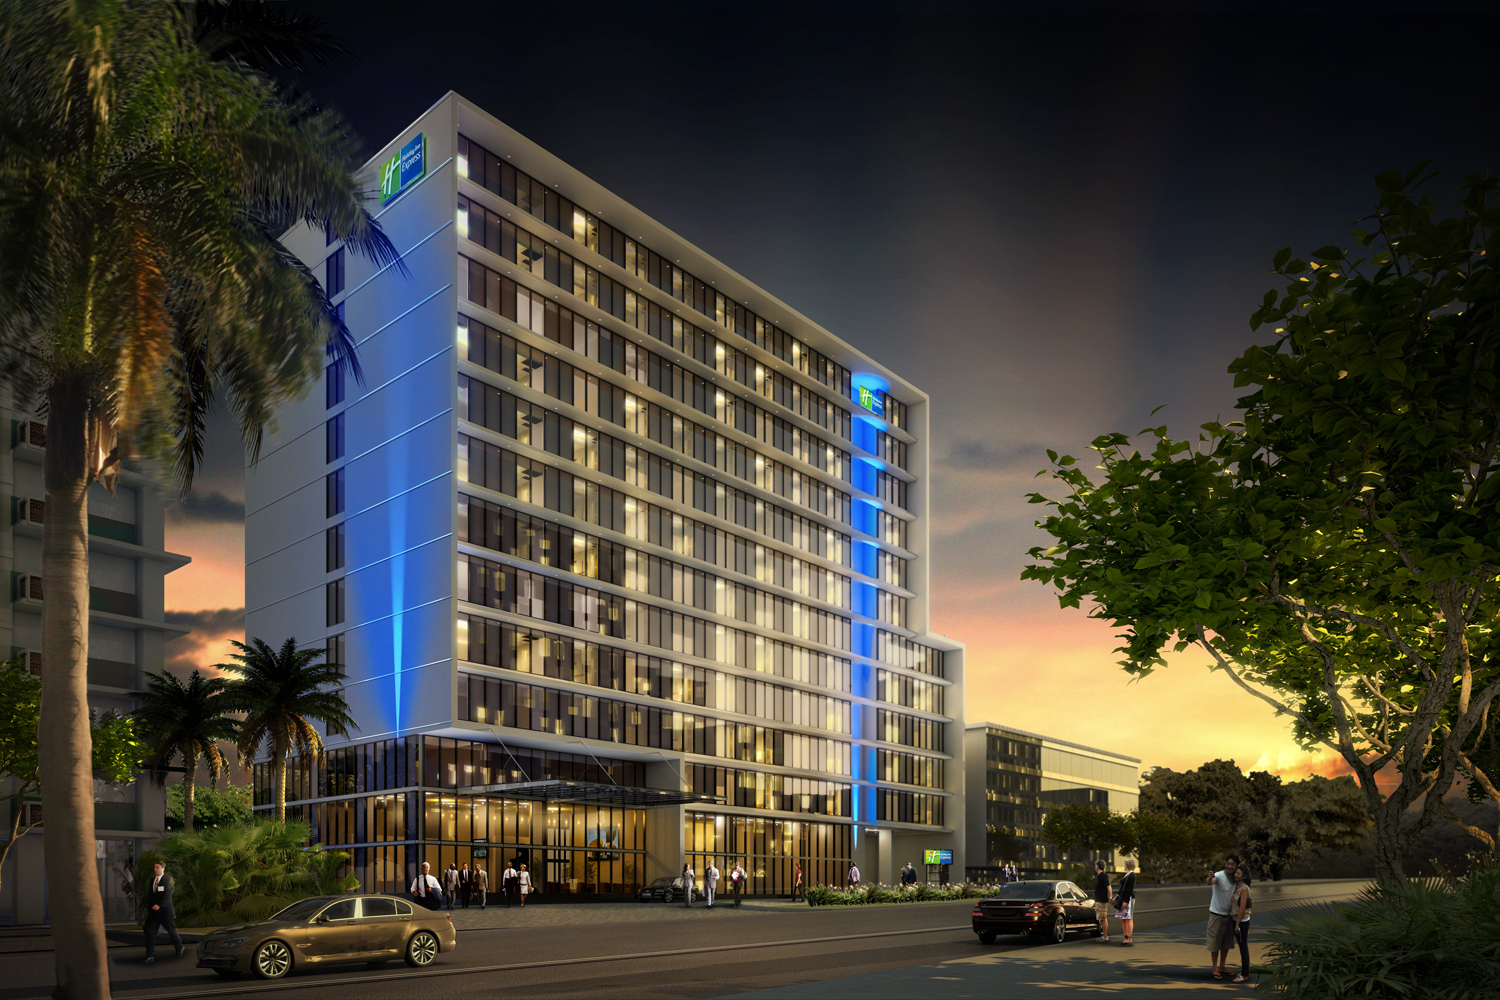 IHG opens its First Holiday Inn Express® hotel in Panama City, Panama (Graphic: Business Wire)